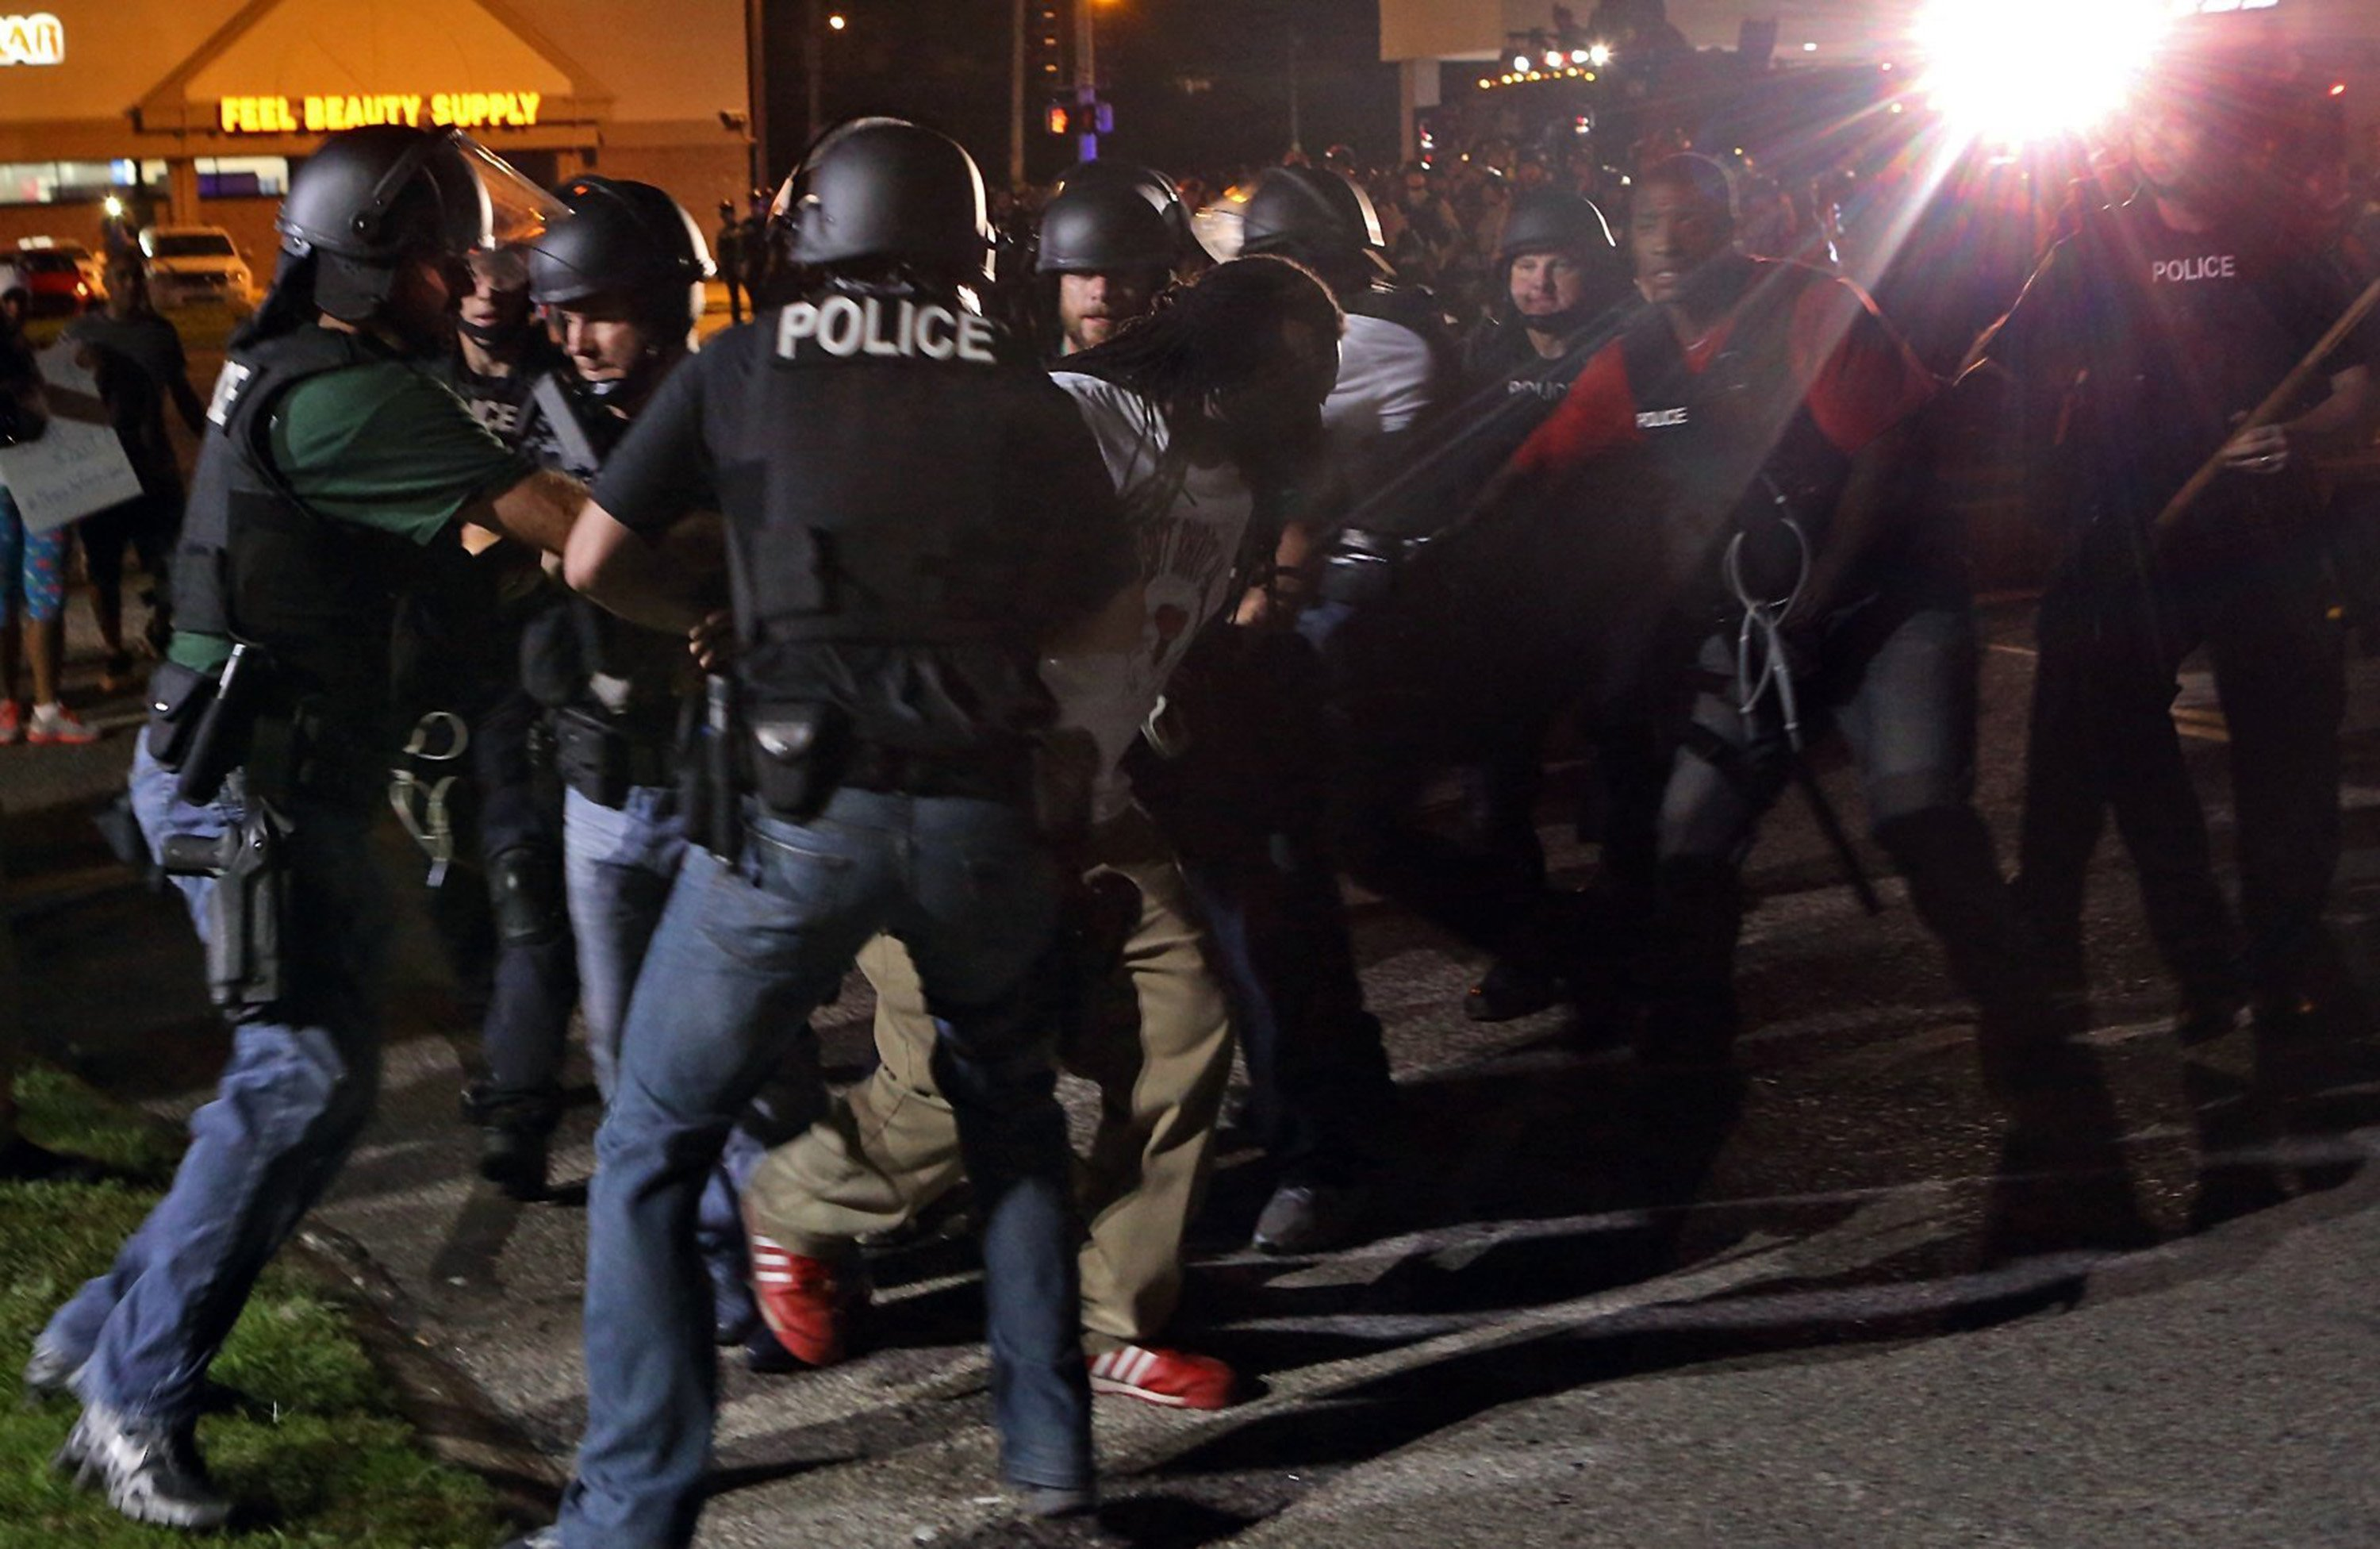 Police rushed a protester who was taunting and cursing them on W. Florissant in Ferguson, Mo. on Monday night, Aug. 18, 2014, next to the media area at Ferguson and W. Florissant. (J.B. Forbes/St. Louis Post-Dispatch/MCT)